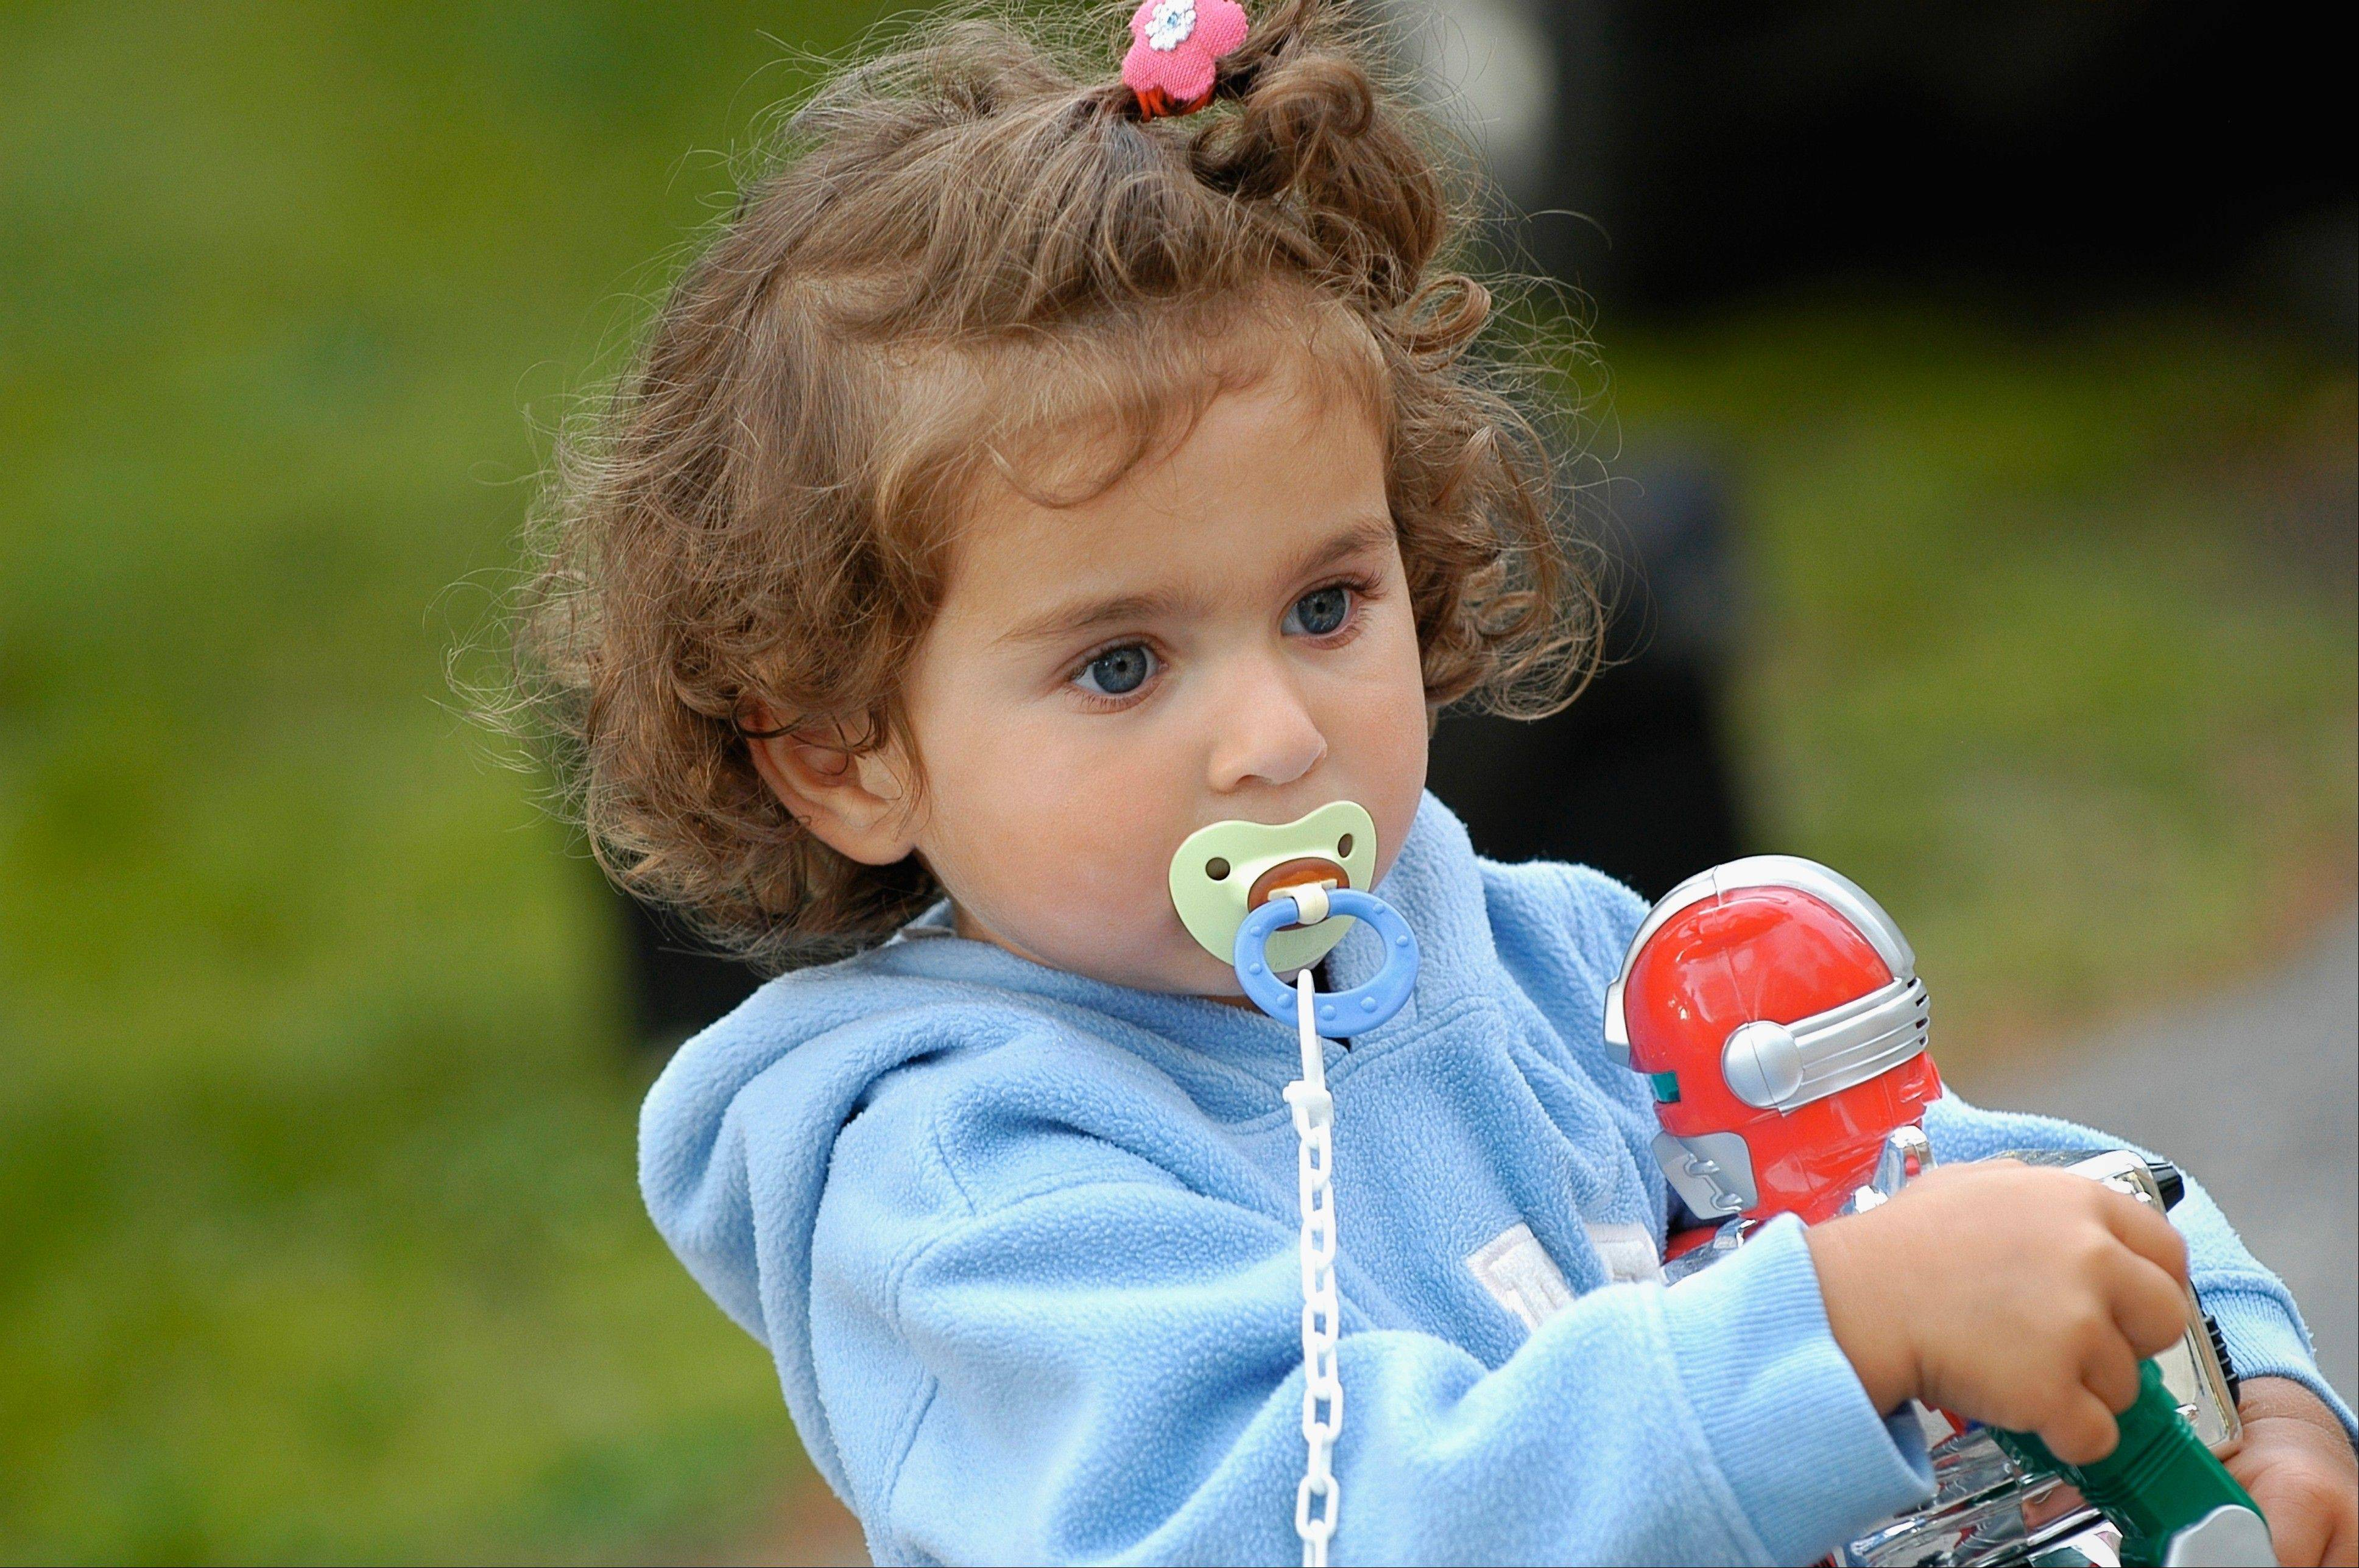 Close-up of a young girl with a pacifier in a garden.